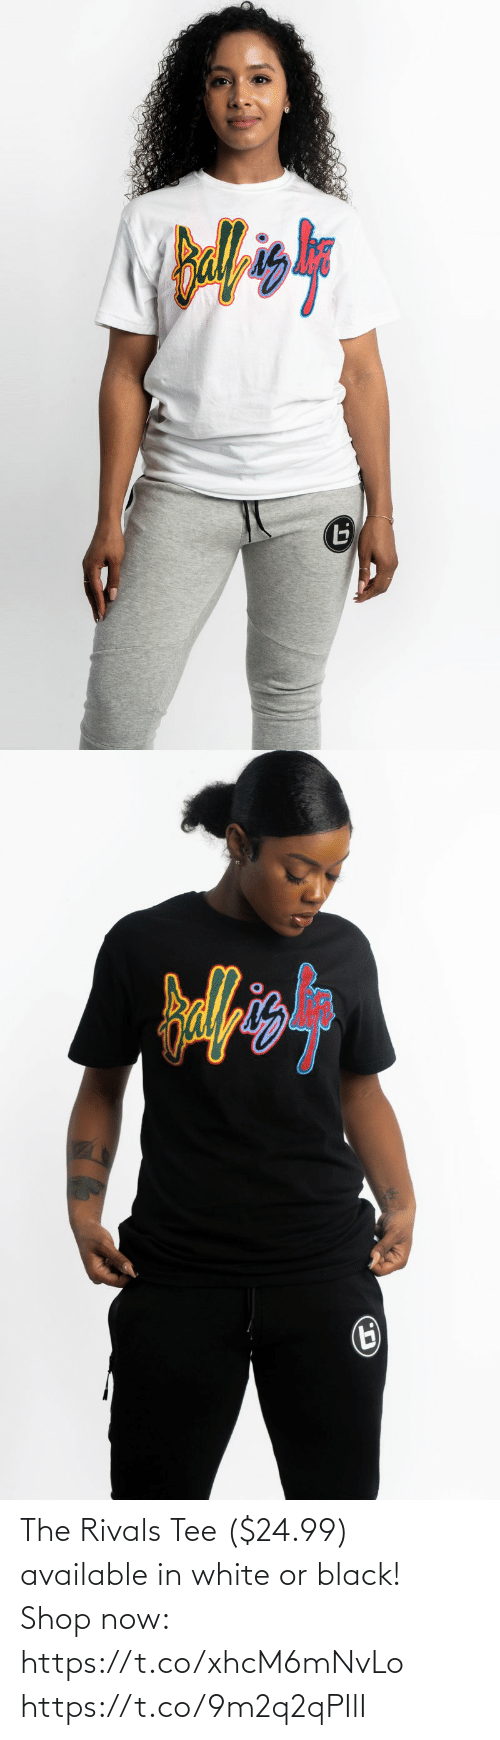 tee: The Rivals Tee ($24.99) available in white or black!  Shop now: https://t.co/xhcM6mNvLo https://t.co/9m2q2qPIlI